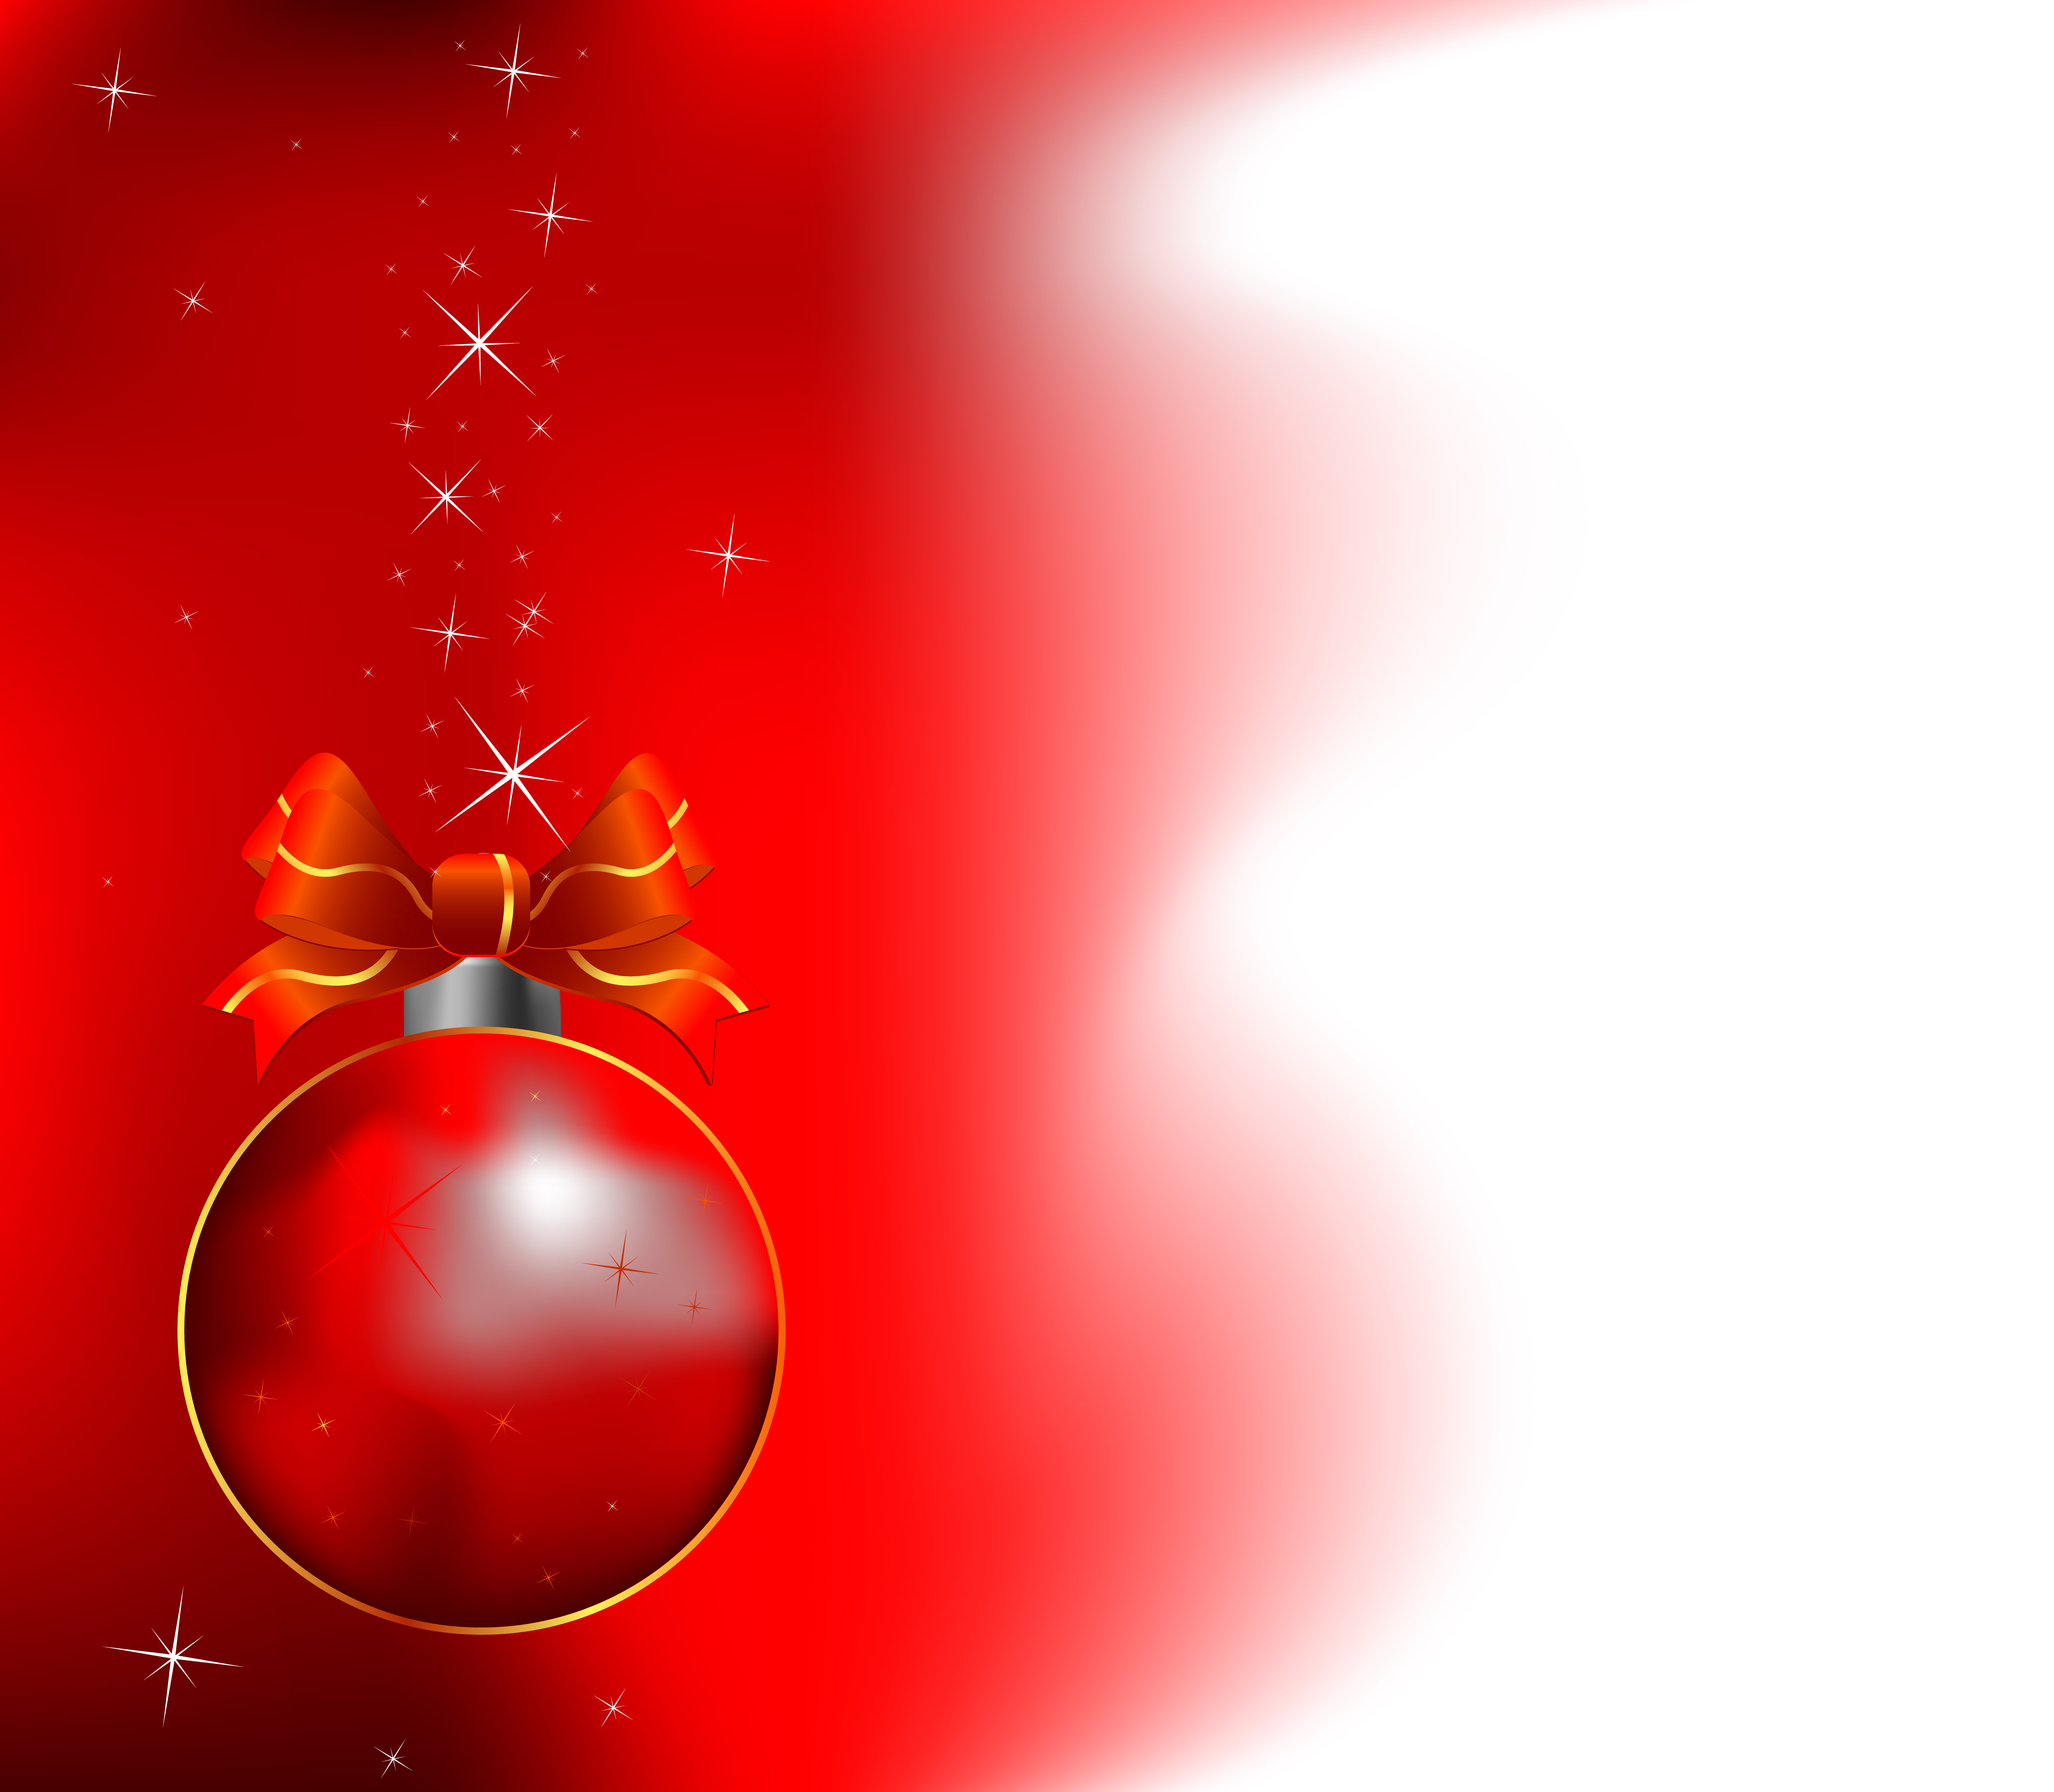 Simple Christmas Backgrounds Vector Images